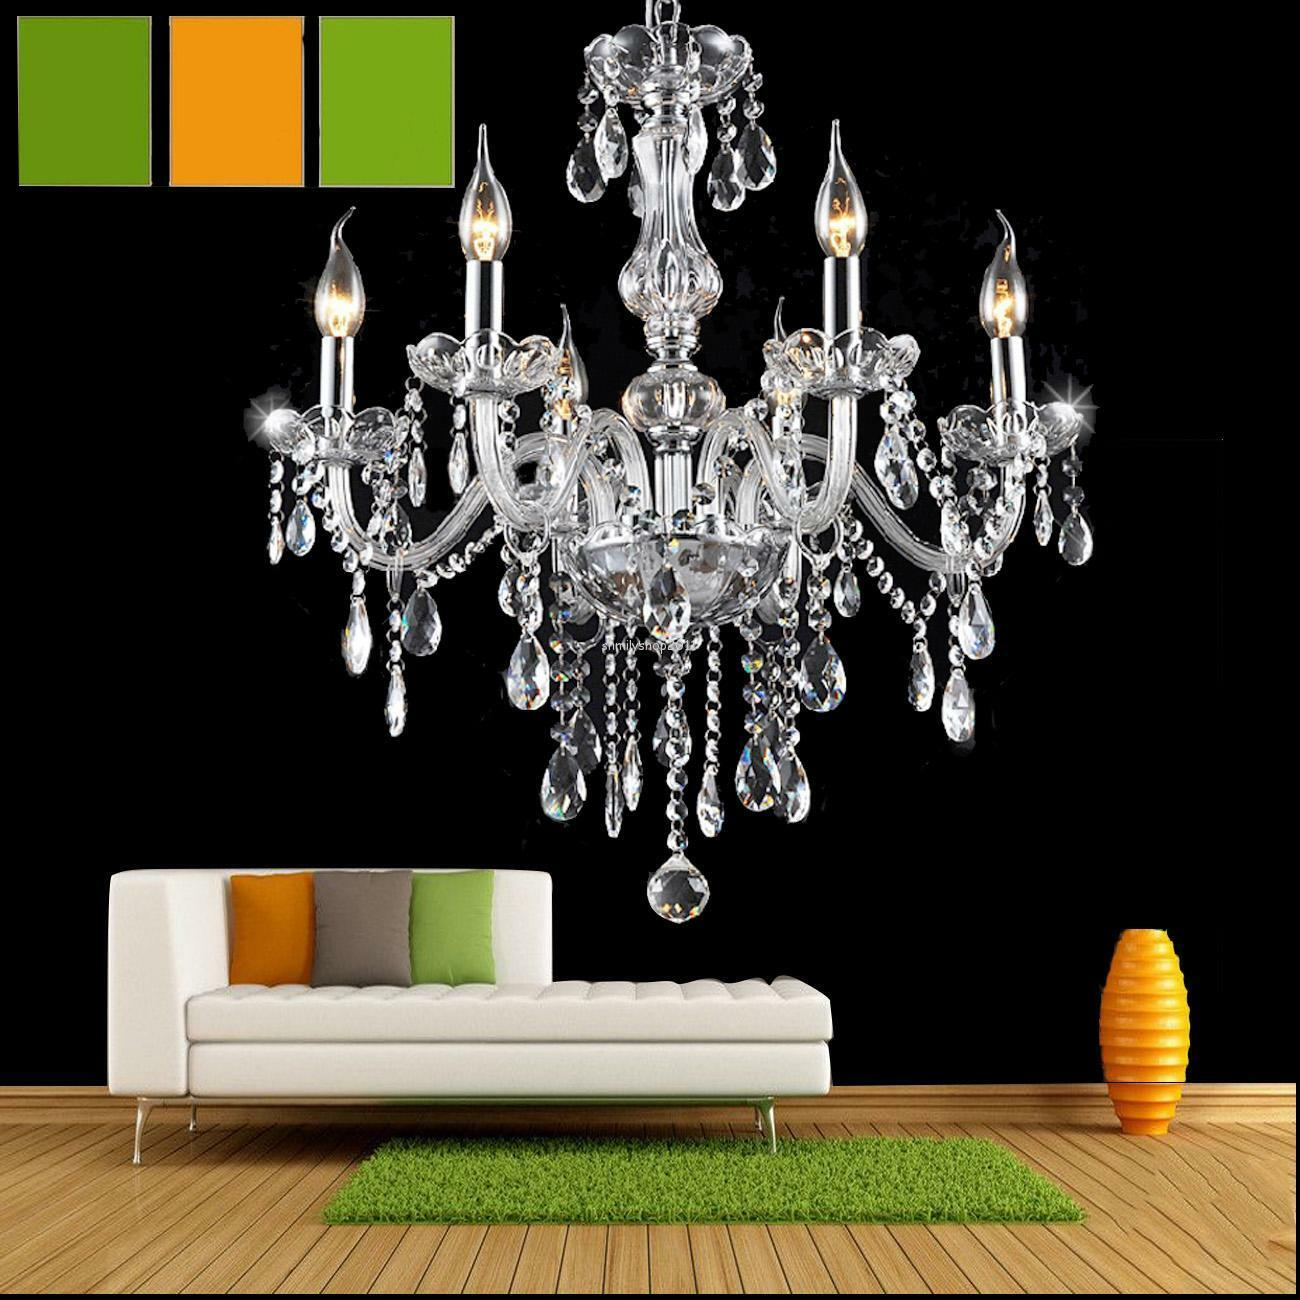 classique 6 feux pampilles lustre verre k9 cristal plafonnier lampe luminaire eur 66 99. Black Bedroom Furniture Sets. Home Design Ideas